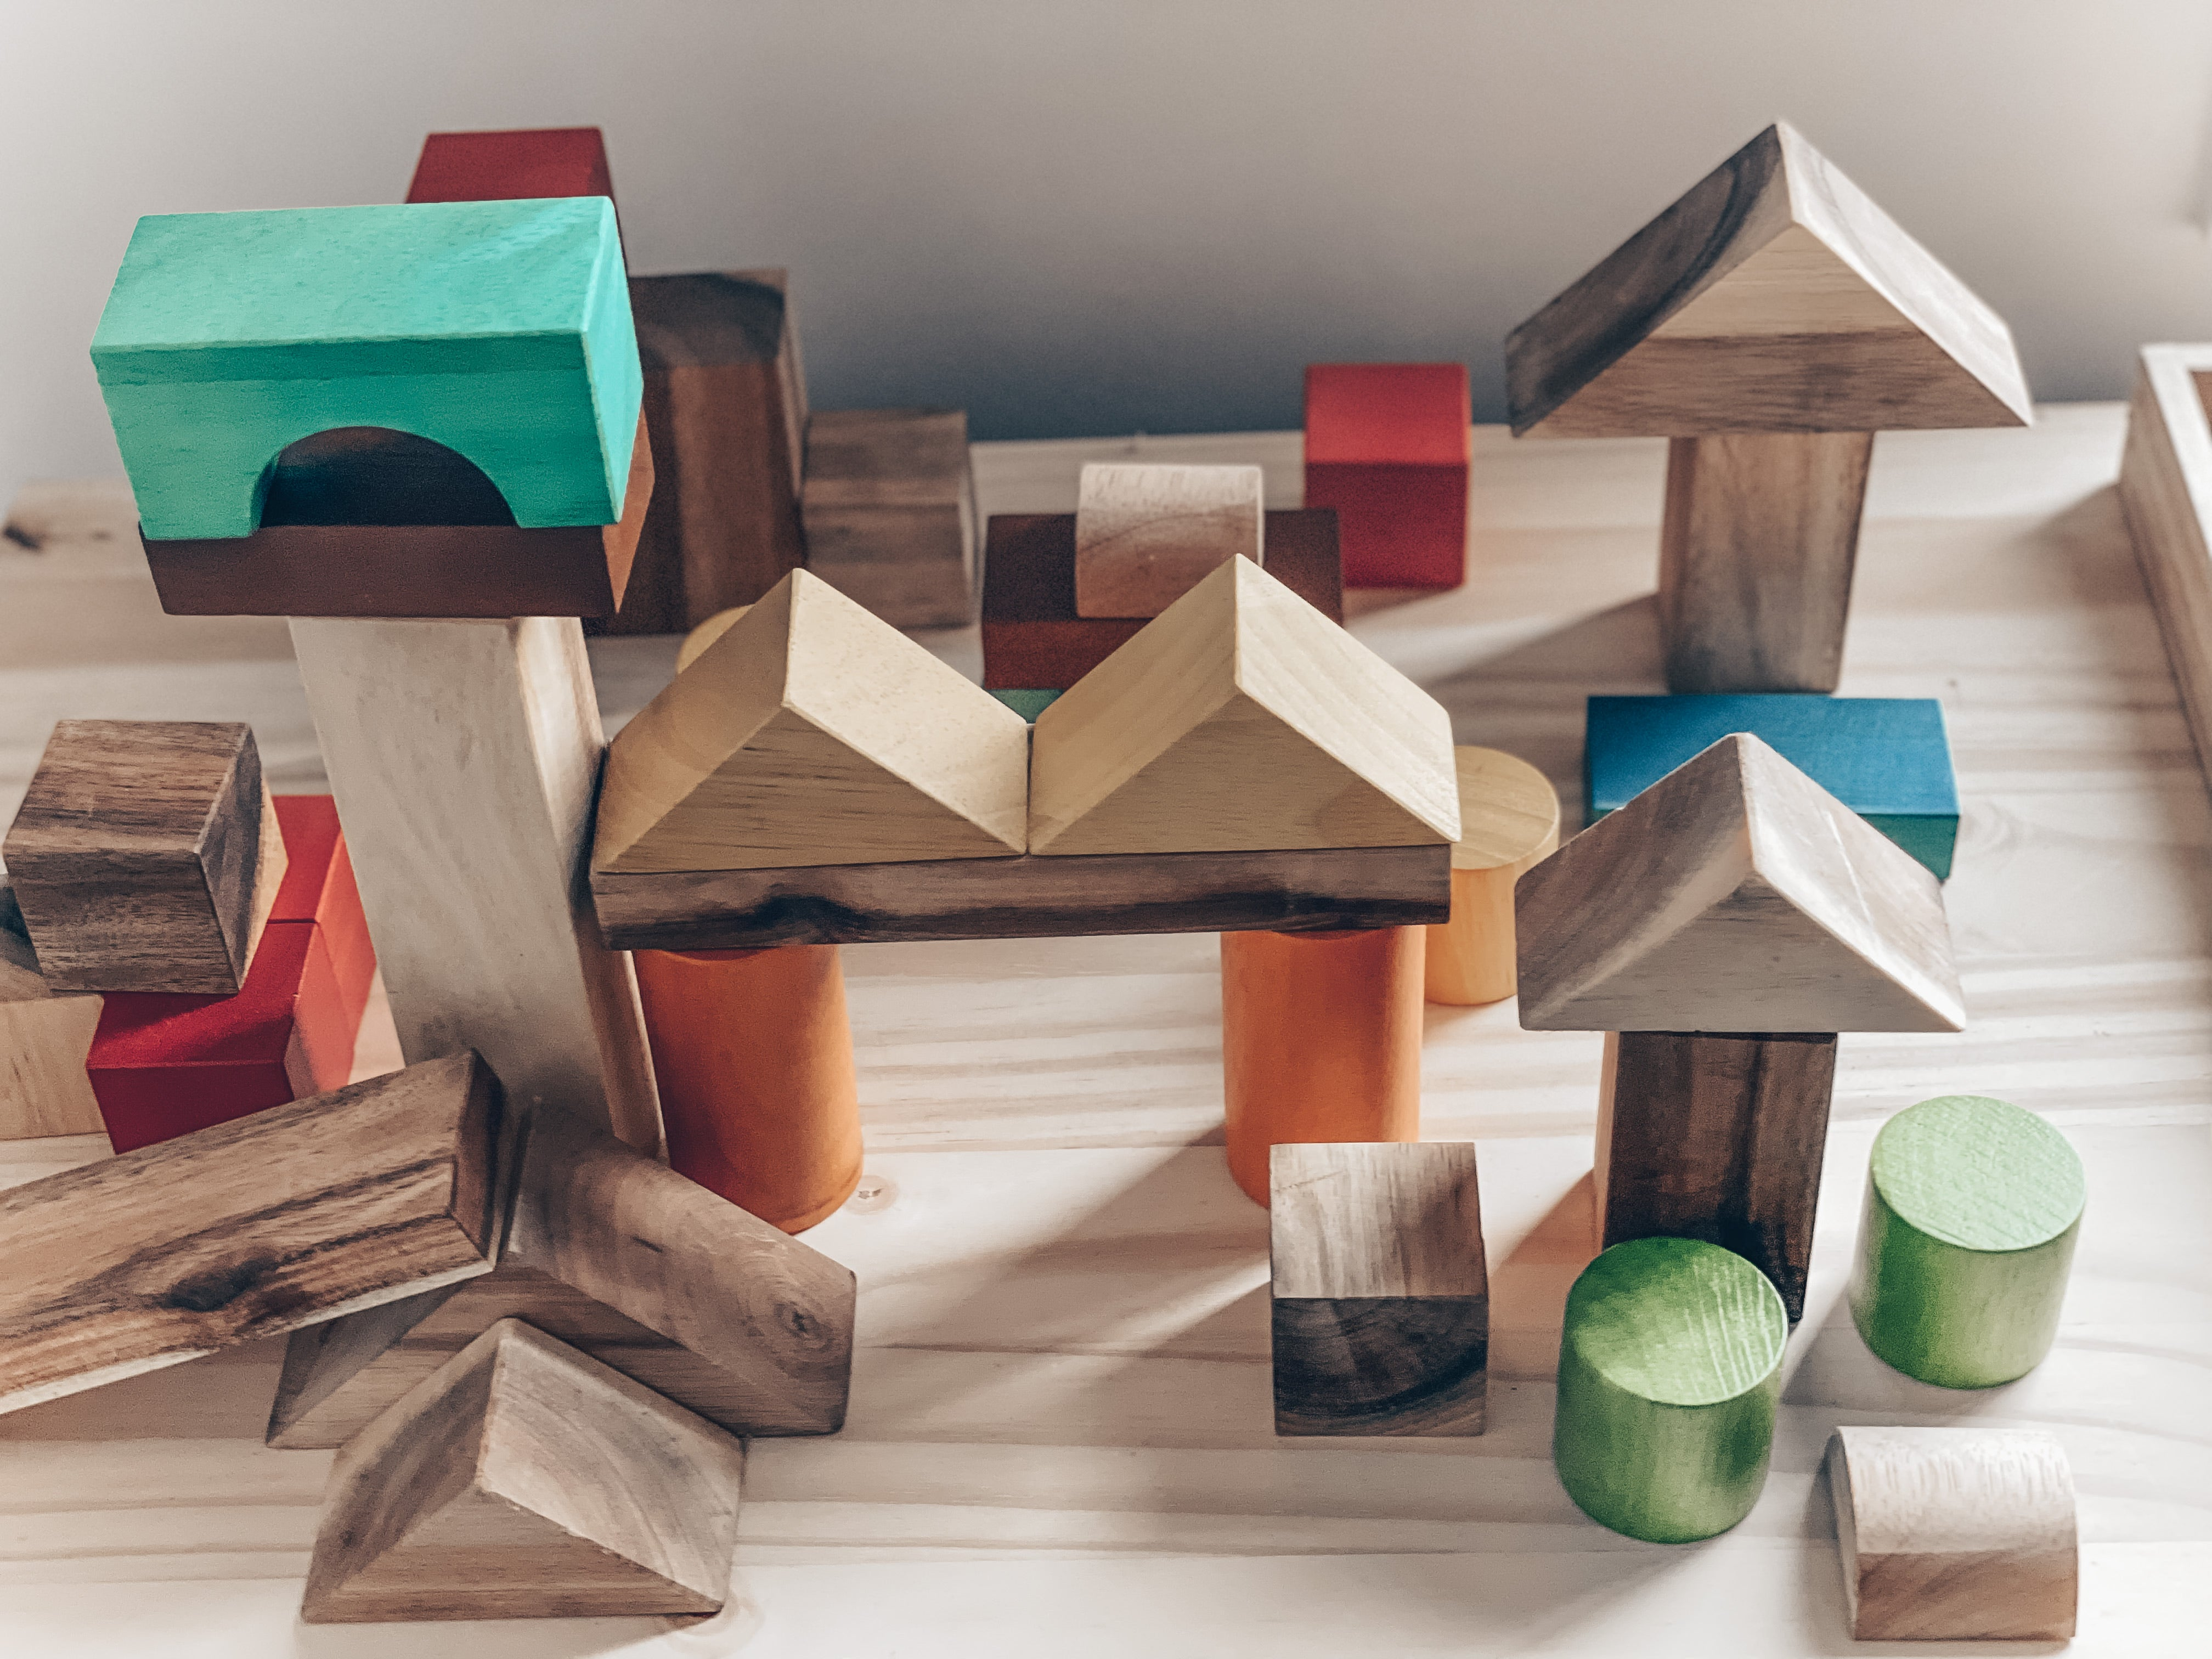 Natural color wooden blocks